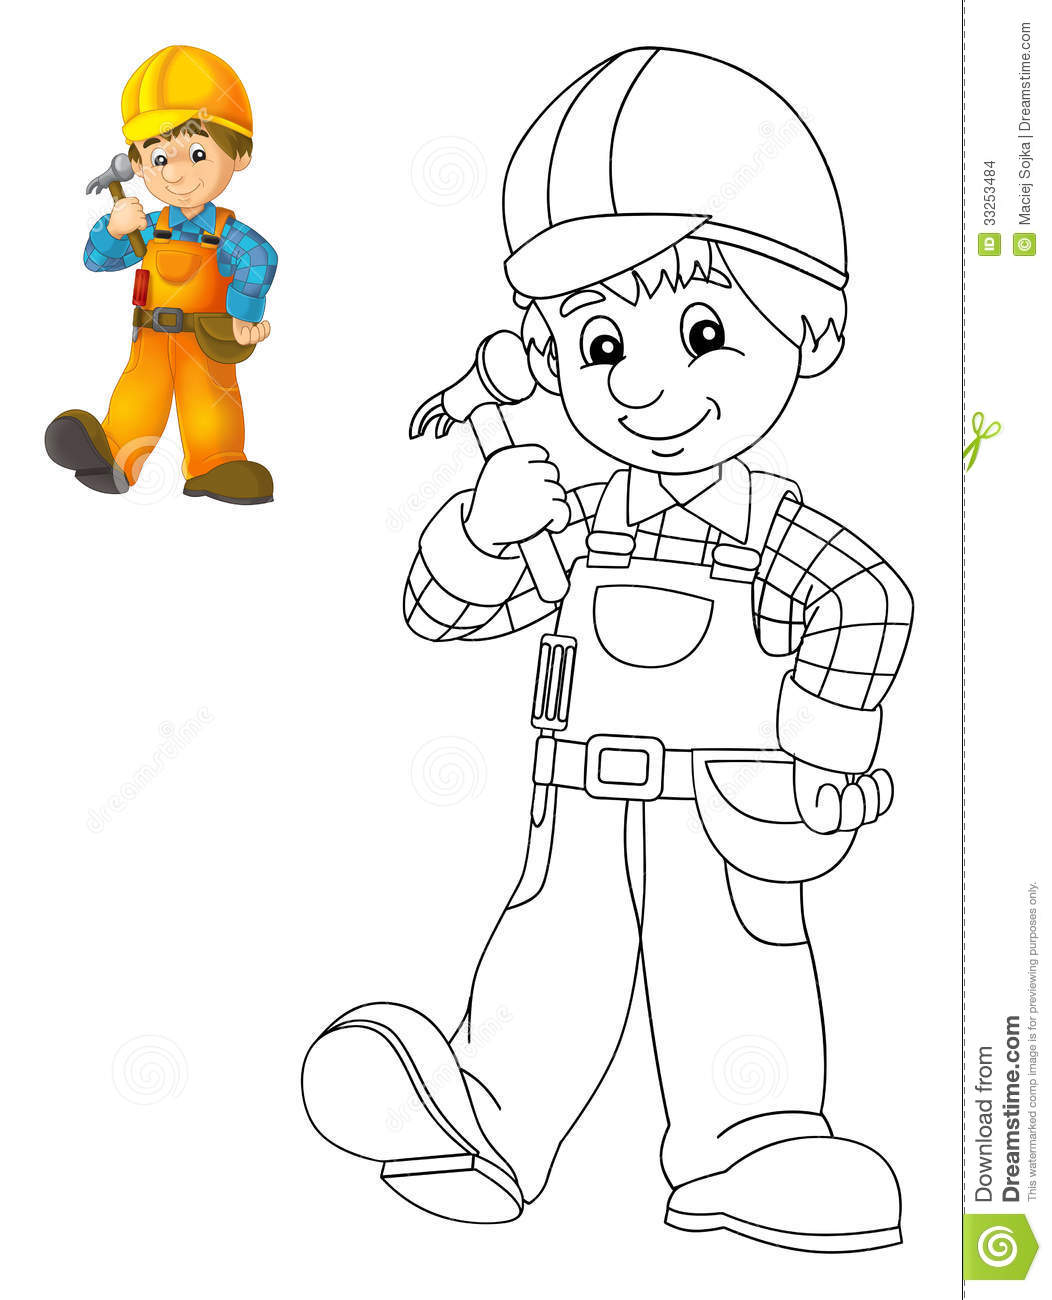 coloring plate construction worker illustration children preview beautiful page 33253484 including construction worker coloring pages 1 on construction worker coloring pages as well as construction worker coloring pages 2 on construction worker coloring pages as well as construction worker coloring page on construction worker coloring pages moreover construction worker coloring pages 4 on construction worker coloring pages